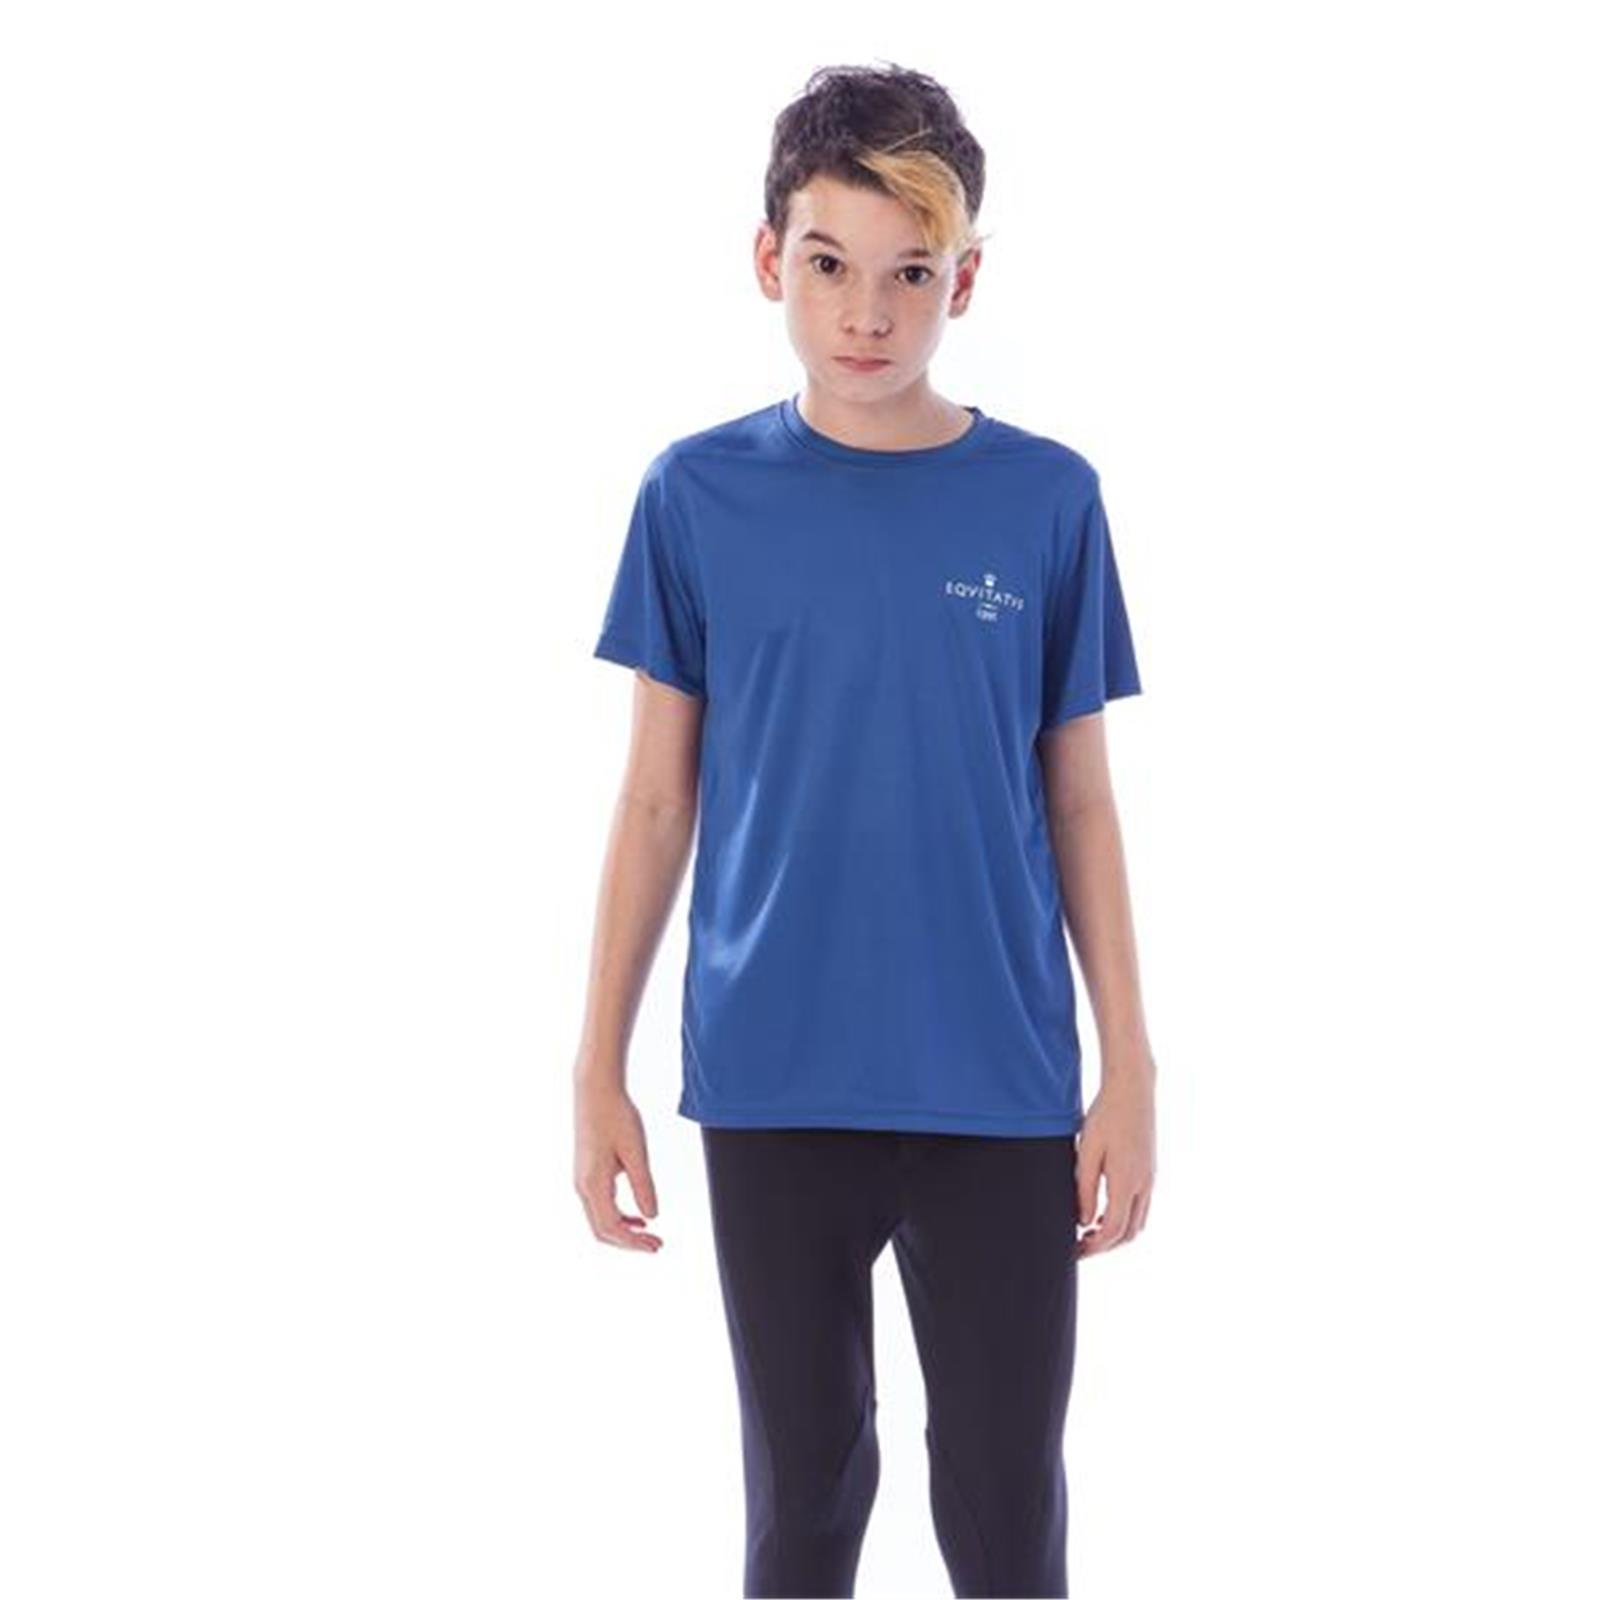 EQUITATUS T-SHIRT TECNICA CROWN C